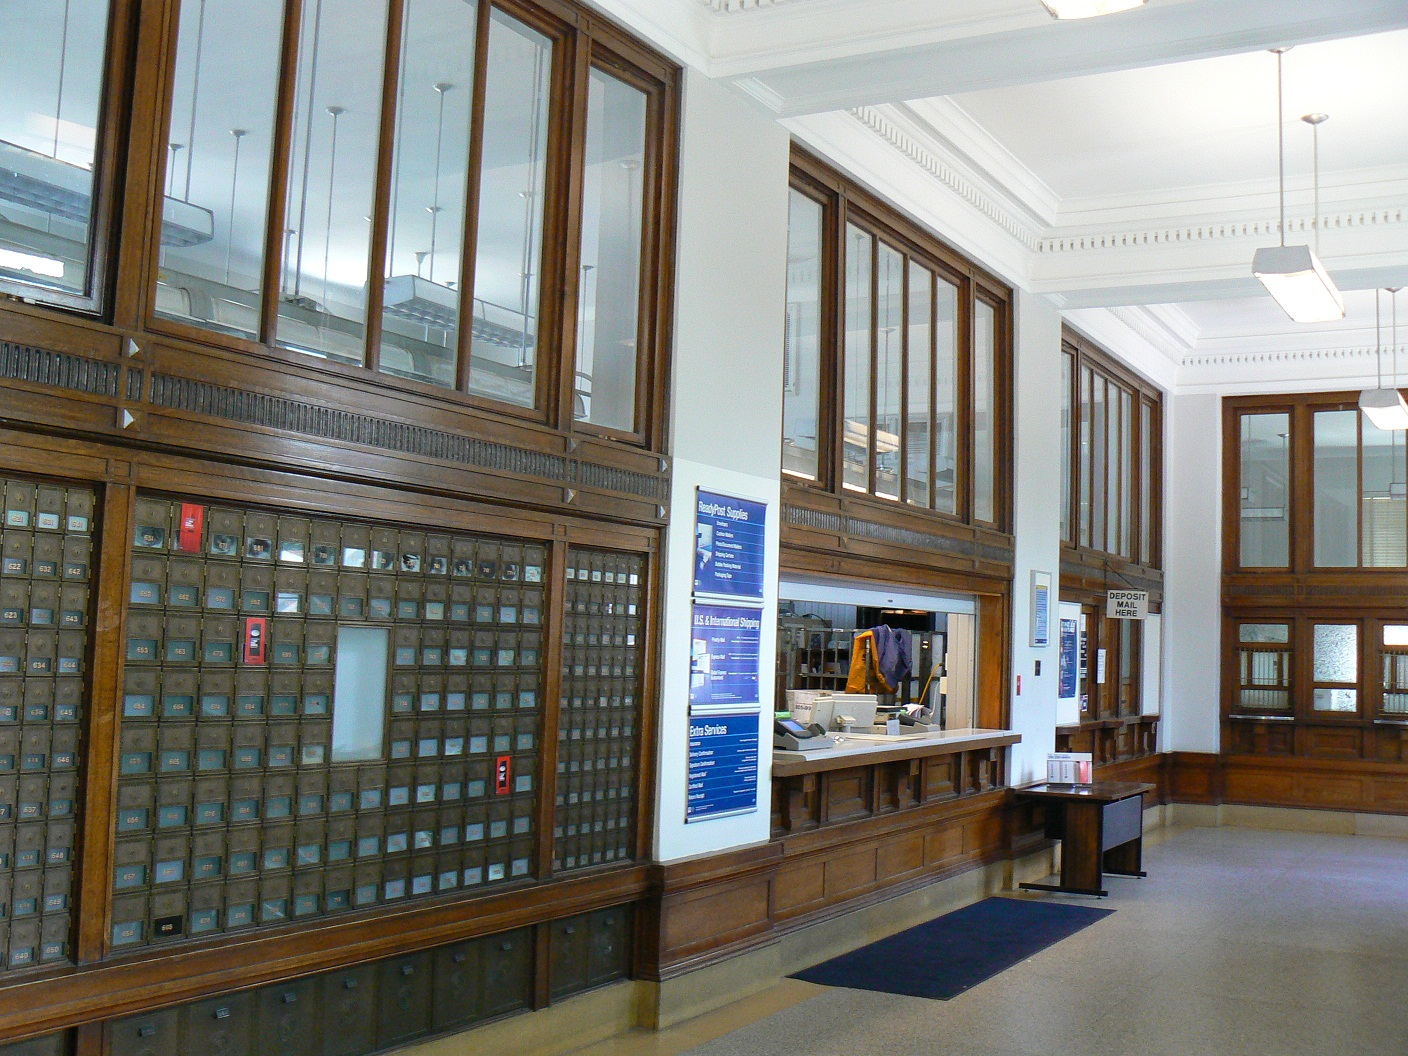 Click image for larger version  Name:Lobby of Lead SD Post Office.jpg Views:45 Size:638.8 KB ID:136884